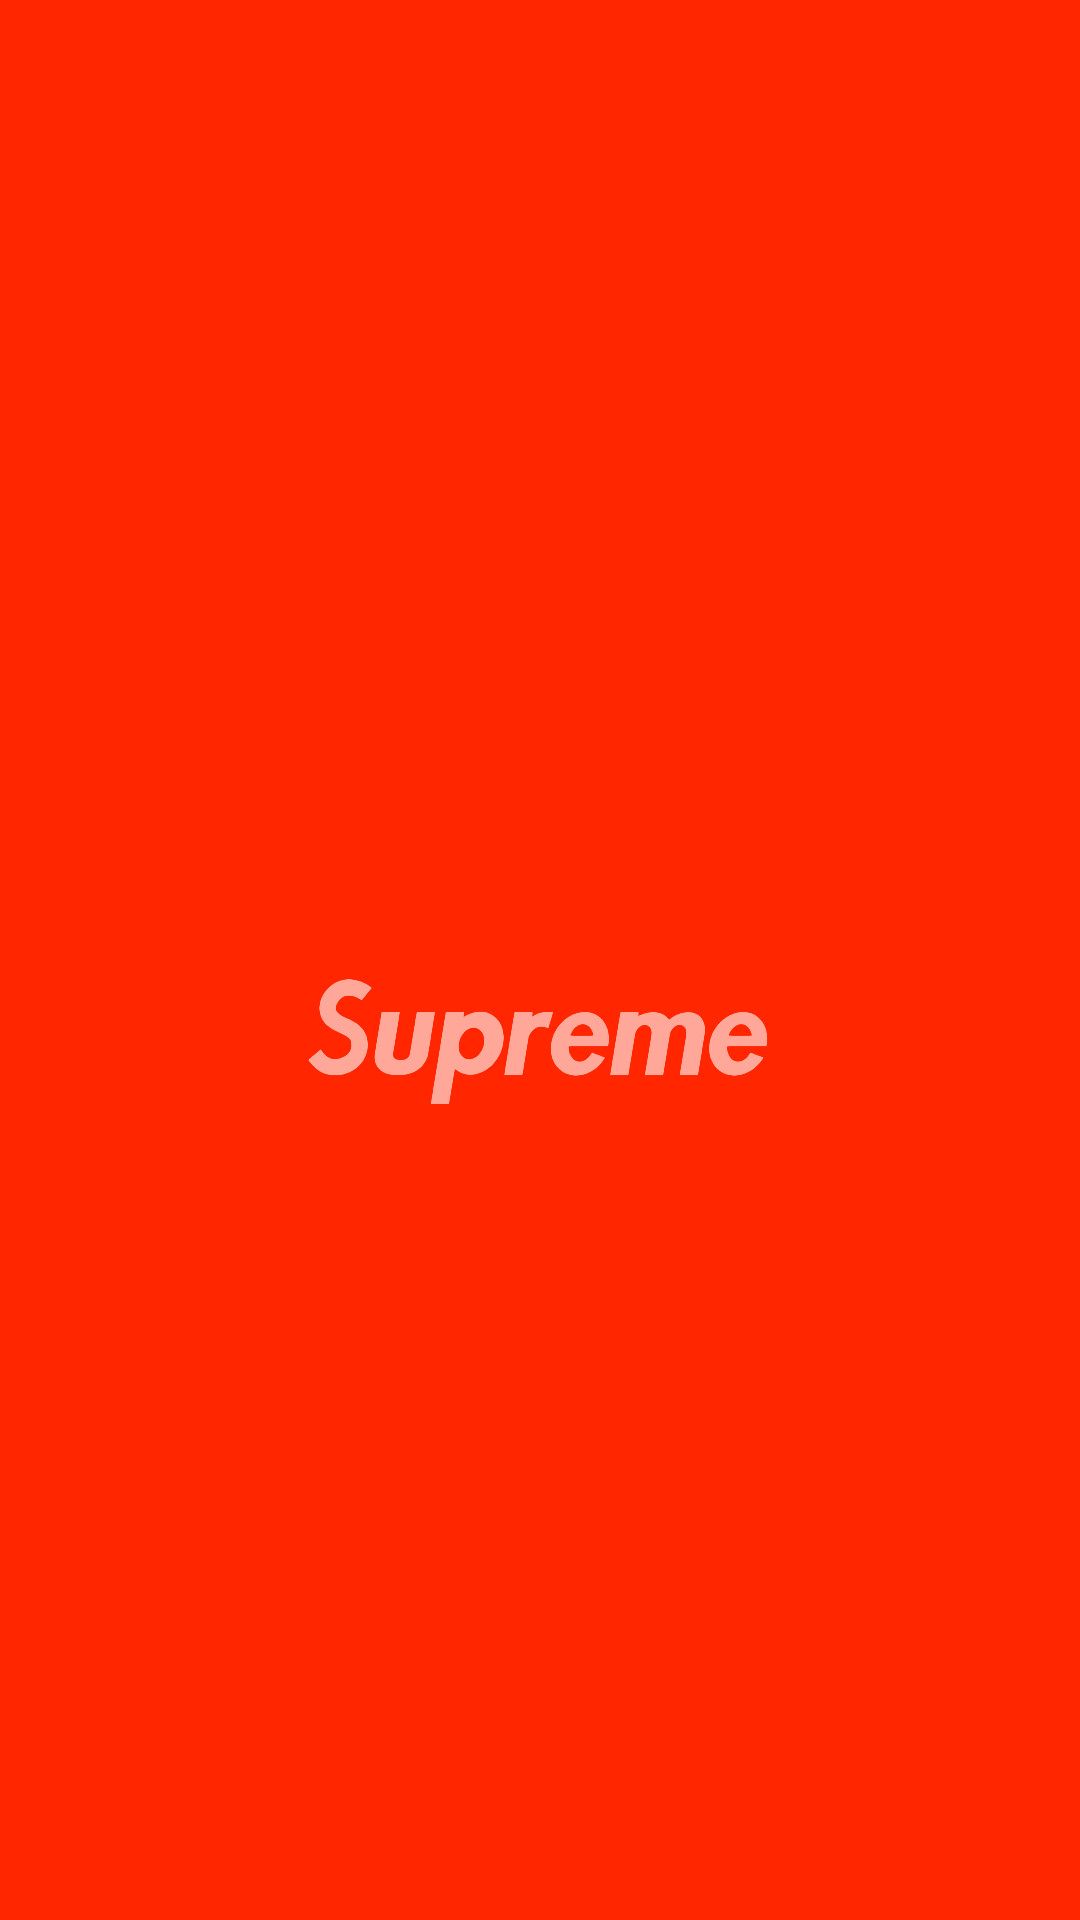 supreme17 - 23 Supreme HQ Smartphone Wallpaper Collection